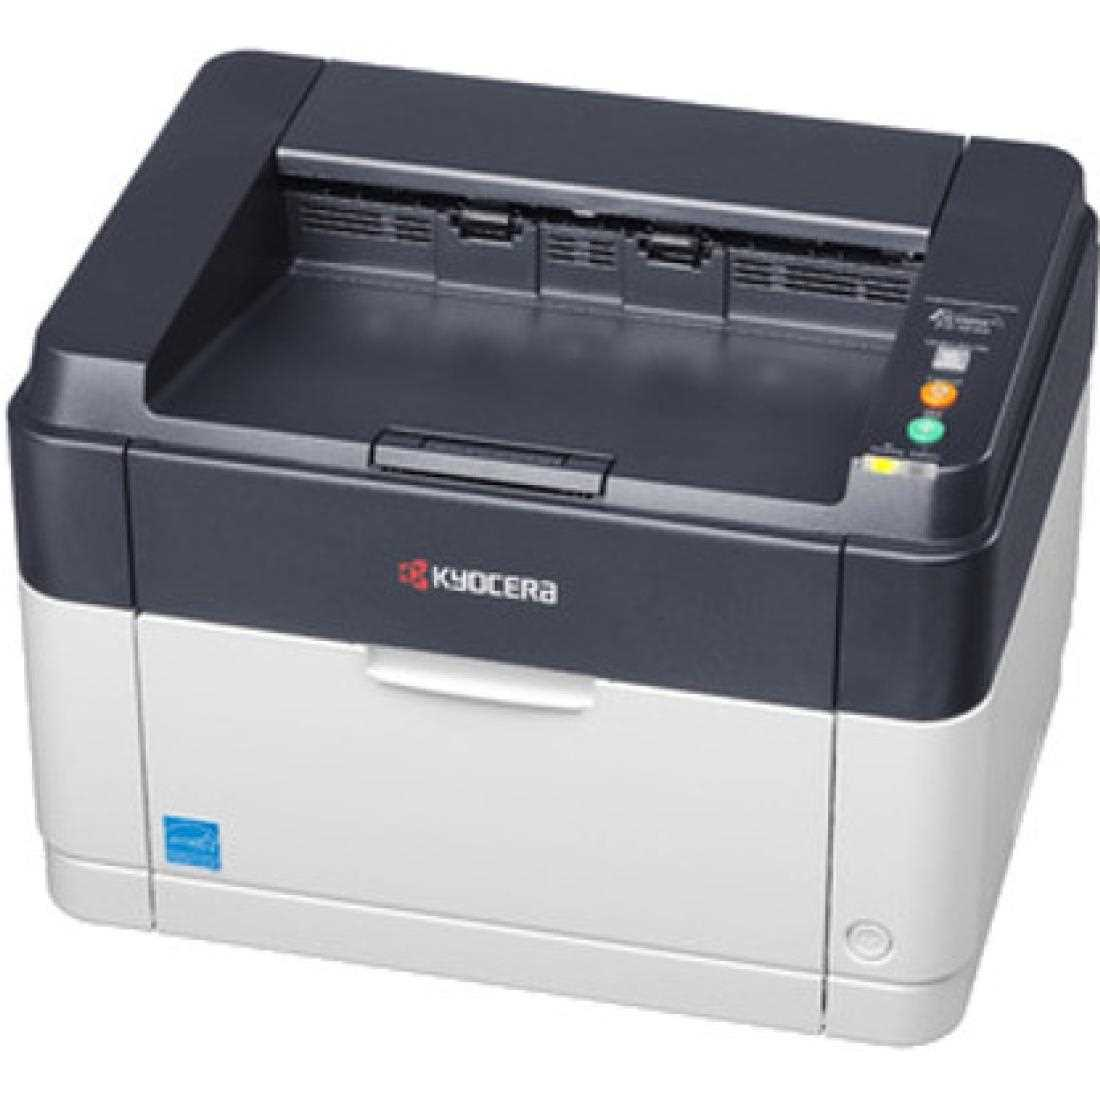 Printer Kyocera FS-1040: characteristics, comparison with competitors and reviews 62